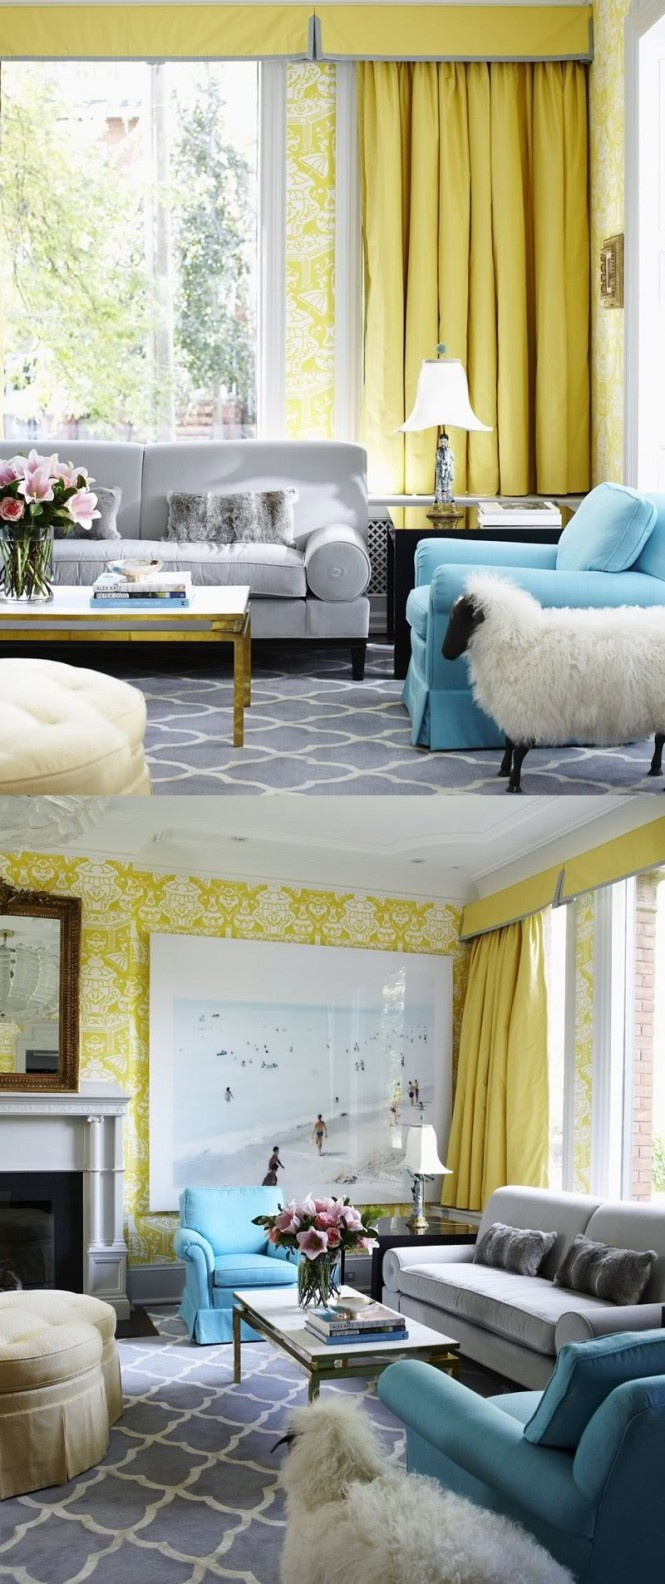 Yellow Rooms Yellow Room Interior Inspiration 55 Rooms For Your Viewing Pleasure